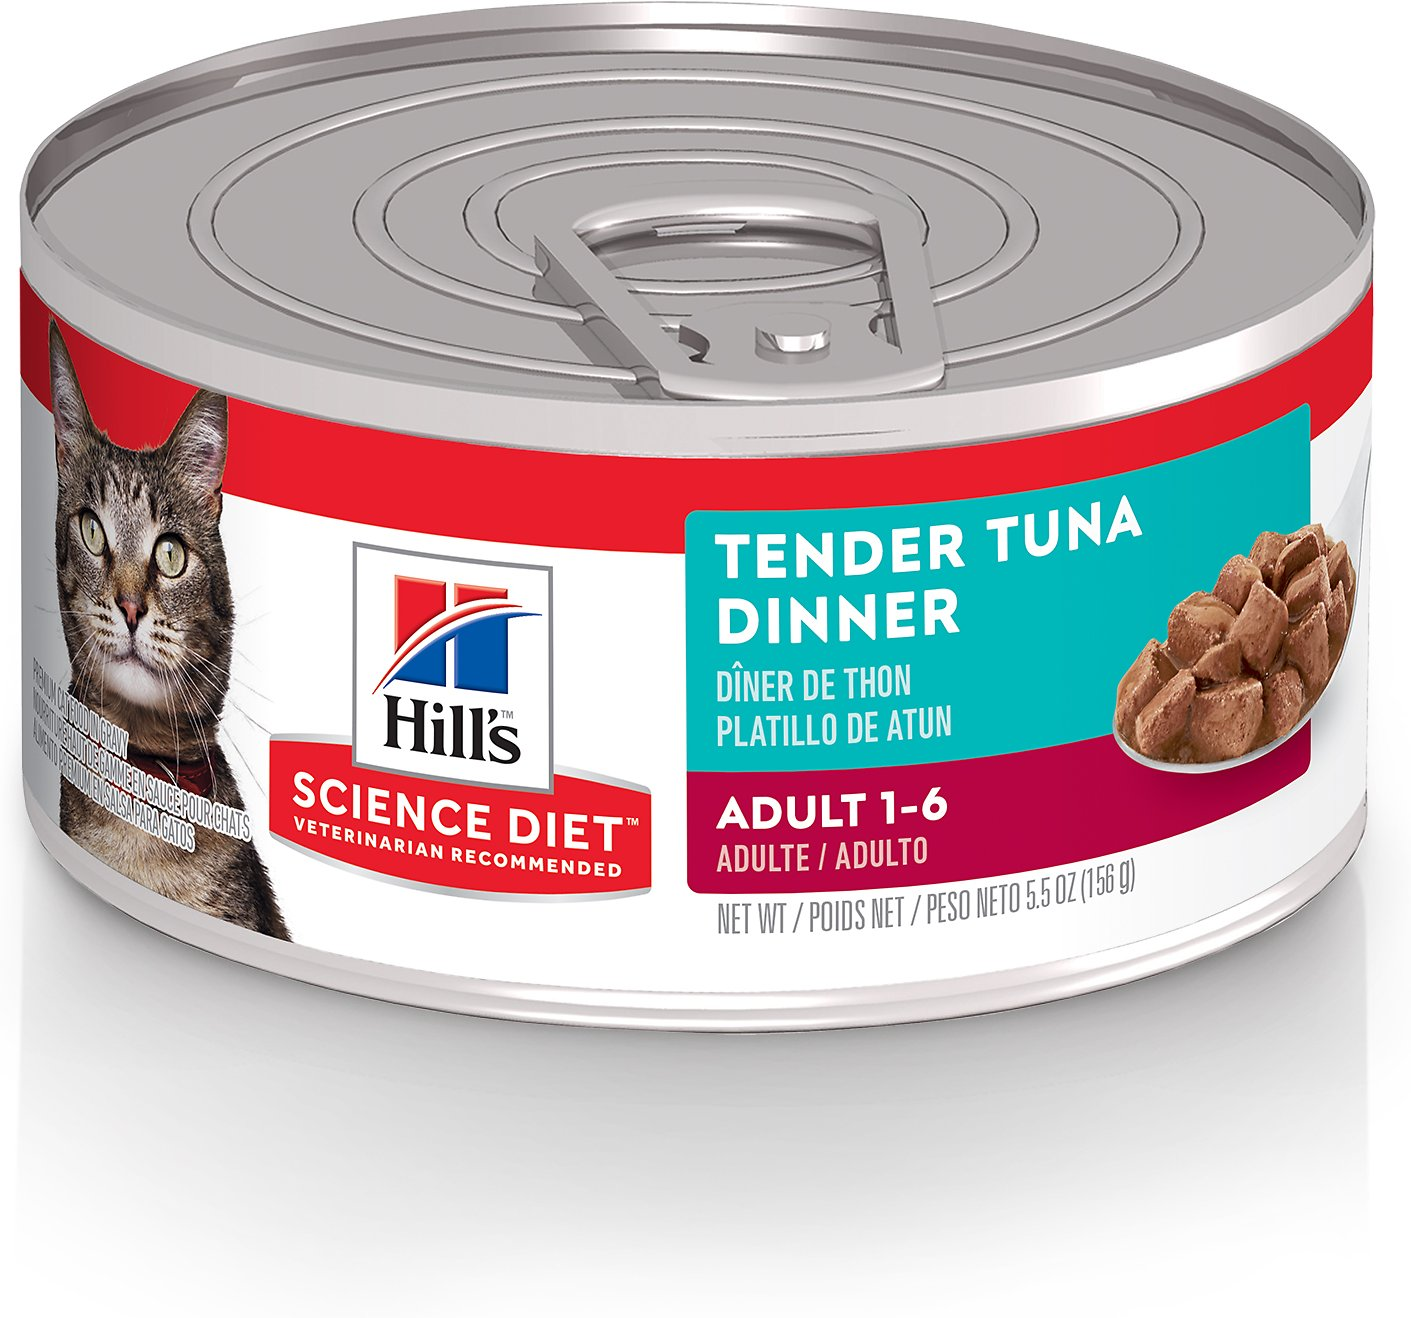 Hill's Science Diet Adult Tender Tuna Dinner Canned Cat Food, 5.5-oz